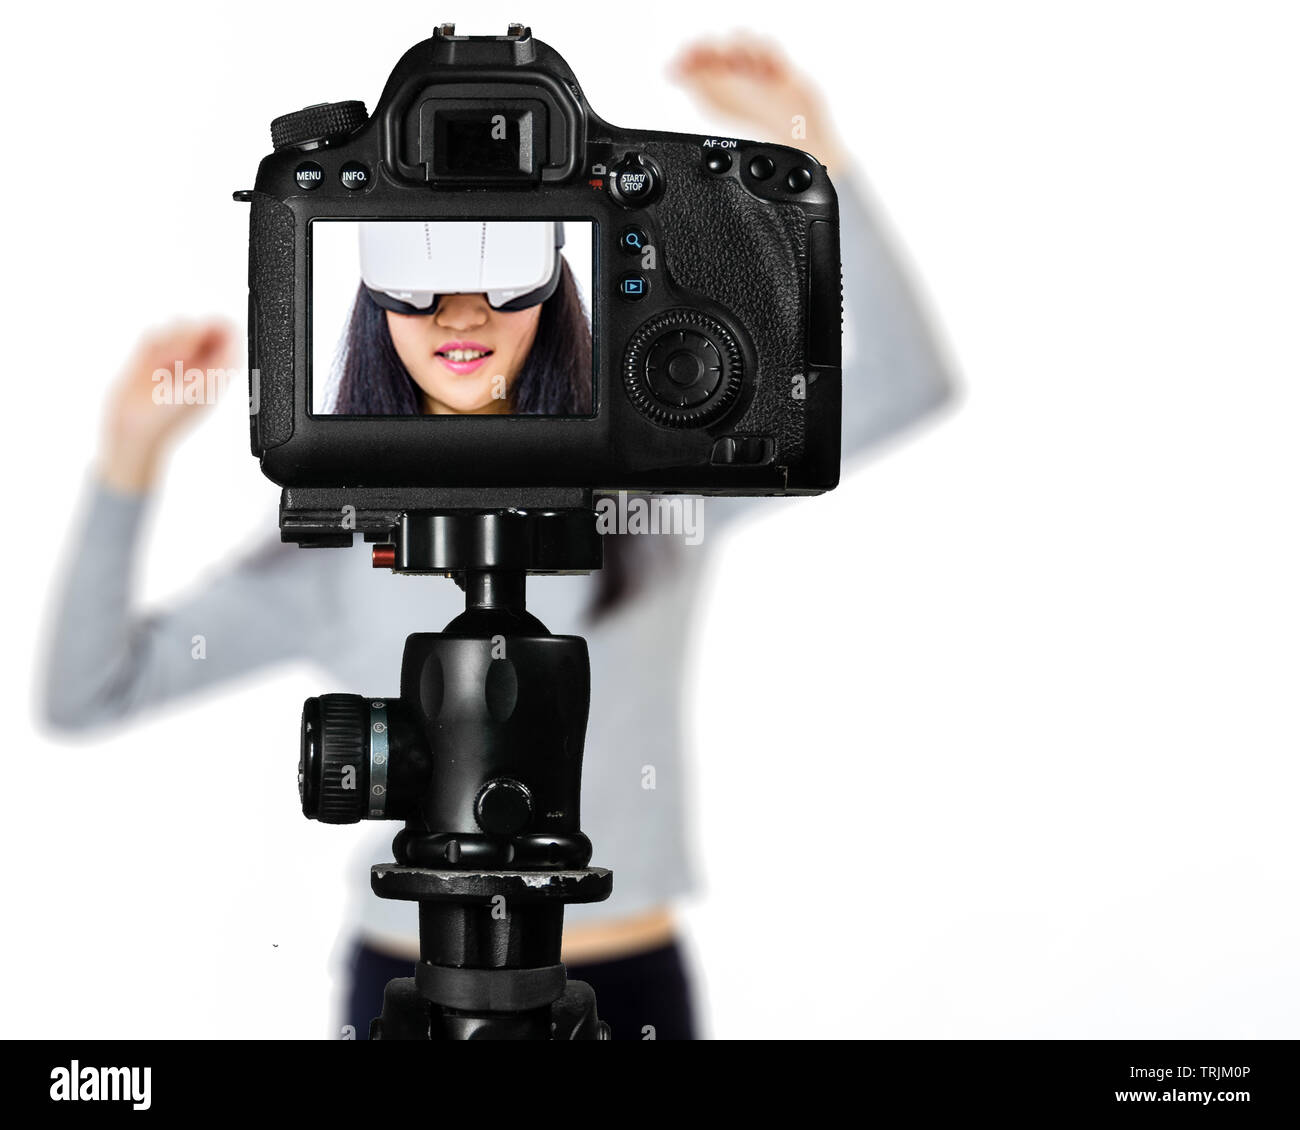 Focus on live view on camera on tripod, teenage girl  using VR goggles image on back screen with blurred scene in background. Teenage vlogger livestre - Stock Image